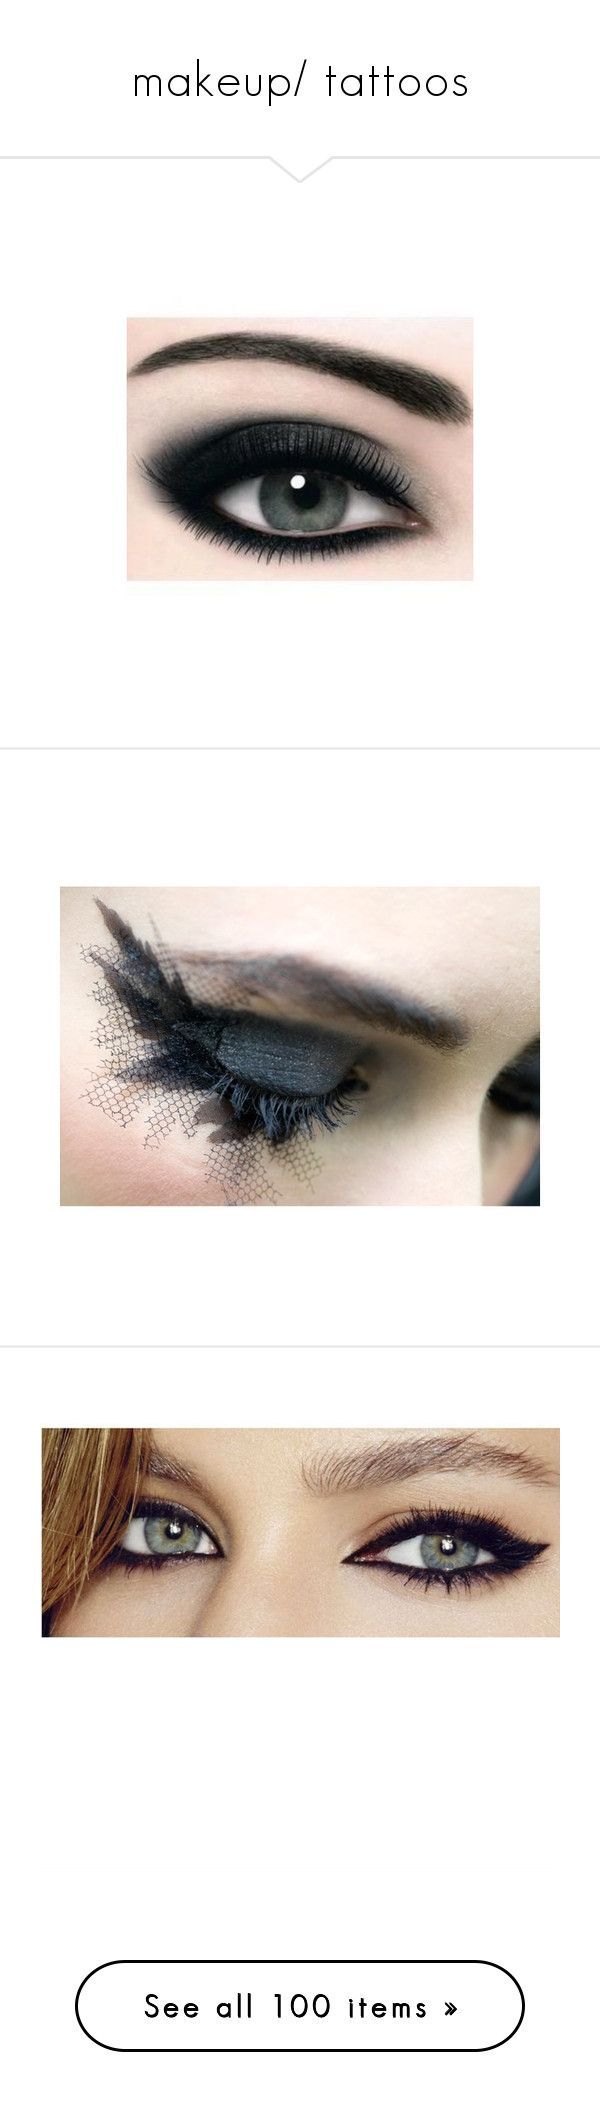 """""""makeup/ tattoos"""" by rock-with-it ❤ liked on Polyvore featuring beauty products, makeup, eye makeup, eyeshadow, eyes, beauty, max factor eyeshadow, max factor eye shadow, max factor and backgrounds"""